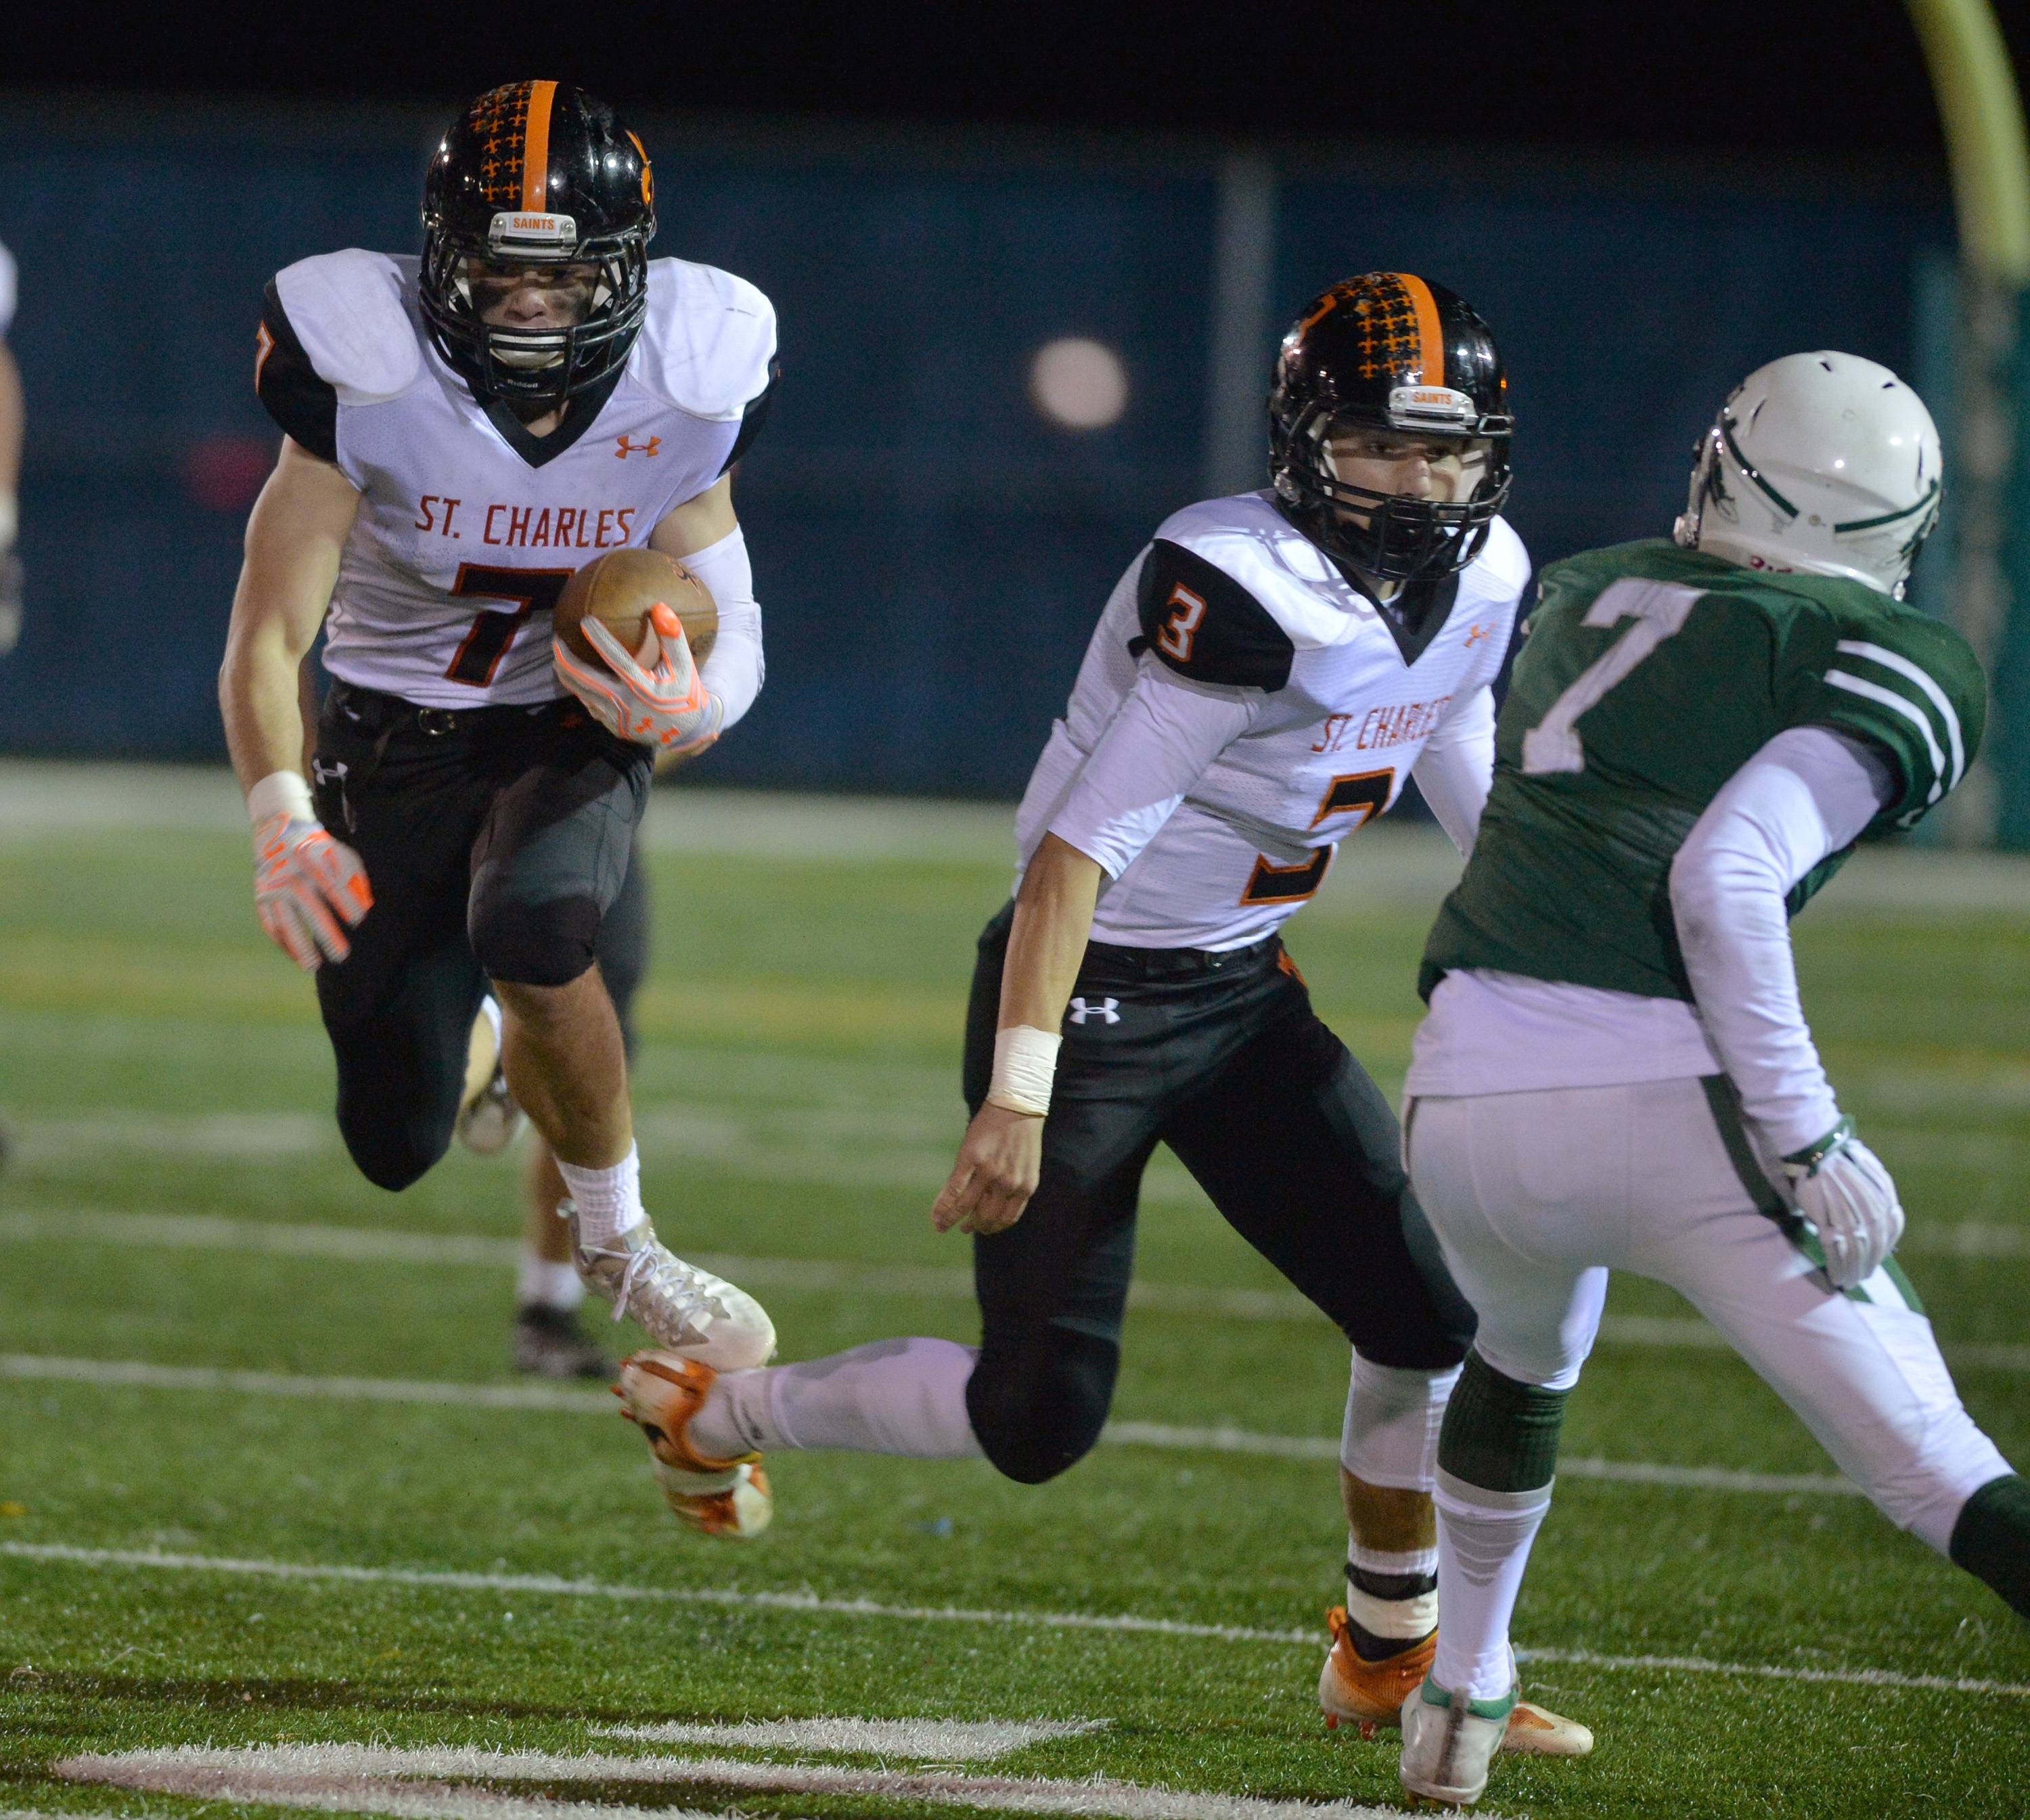 St. Charles East running back Nick Garlisch hurdles a blocker on a run in the third quarter against New Trier Friday in Northfield.